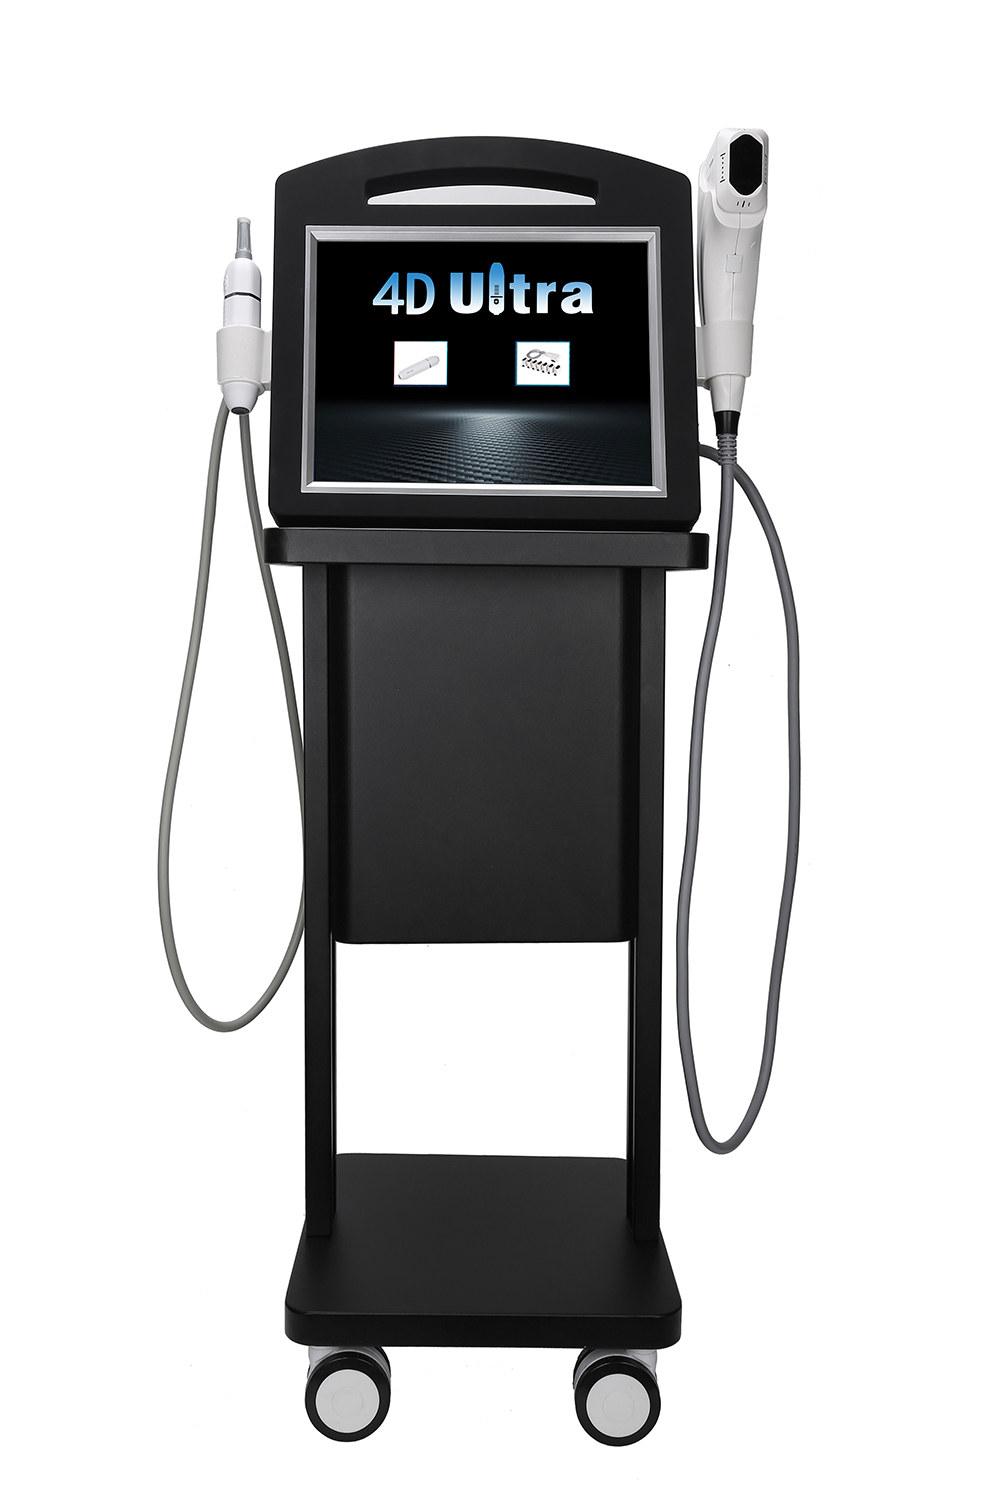 Best 4D 2 in 1 Hifu Lift and tighten facial skin and remove skin wrinkles Supplier